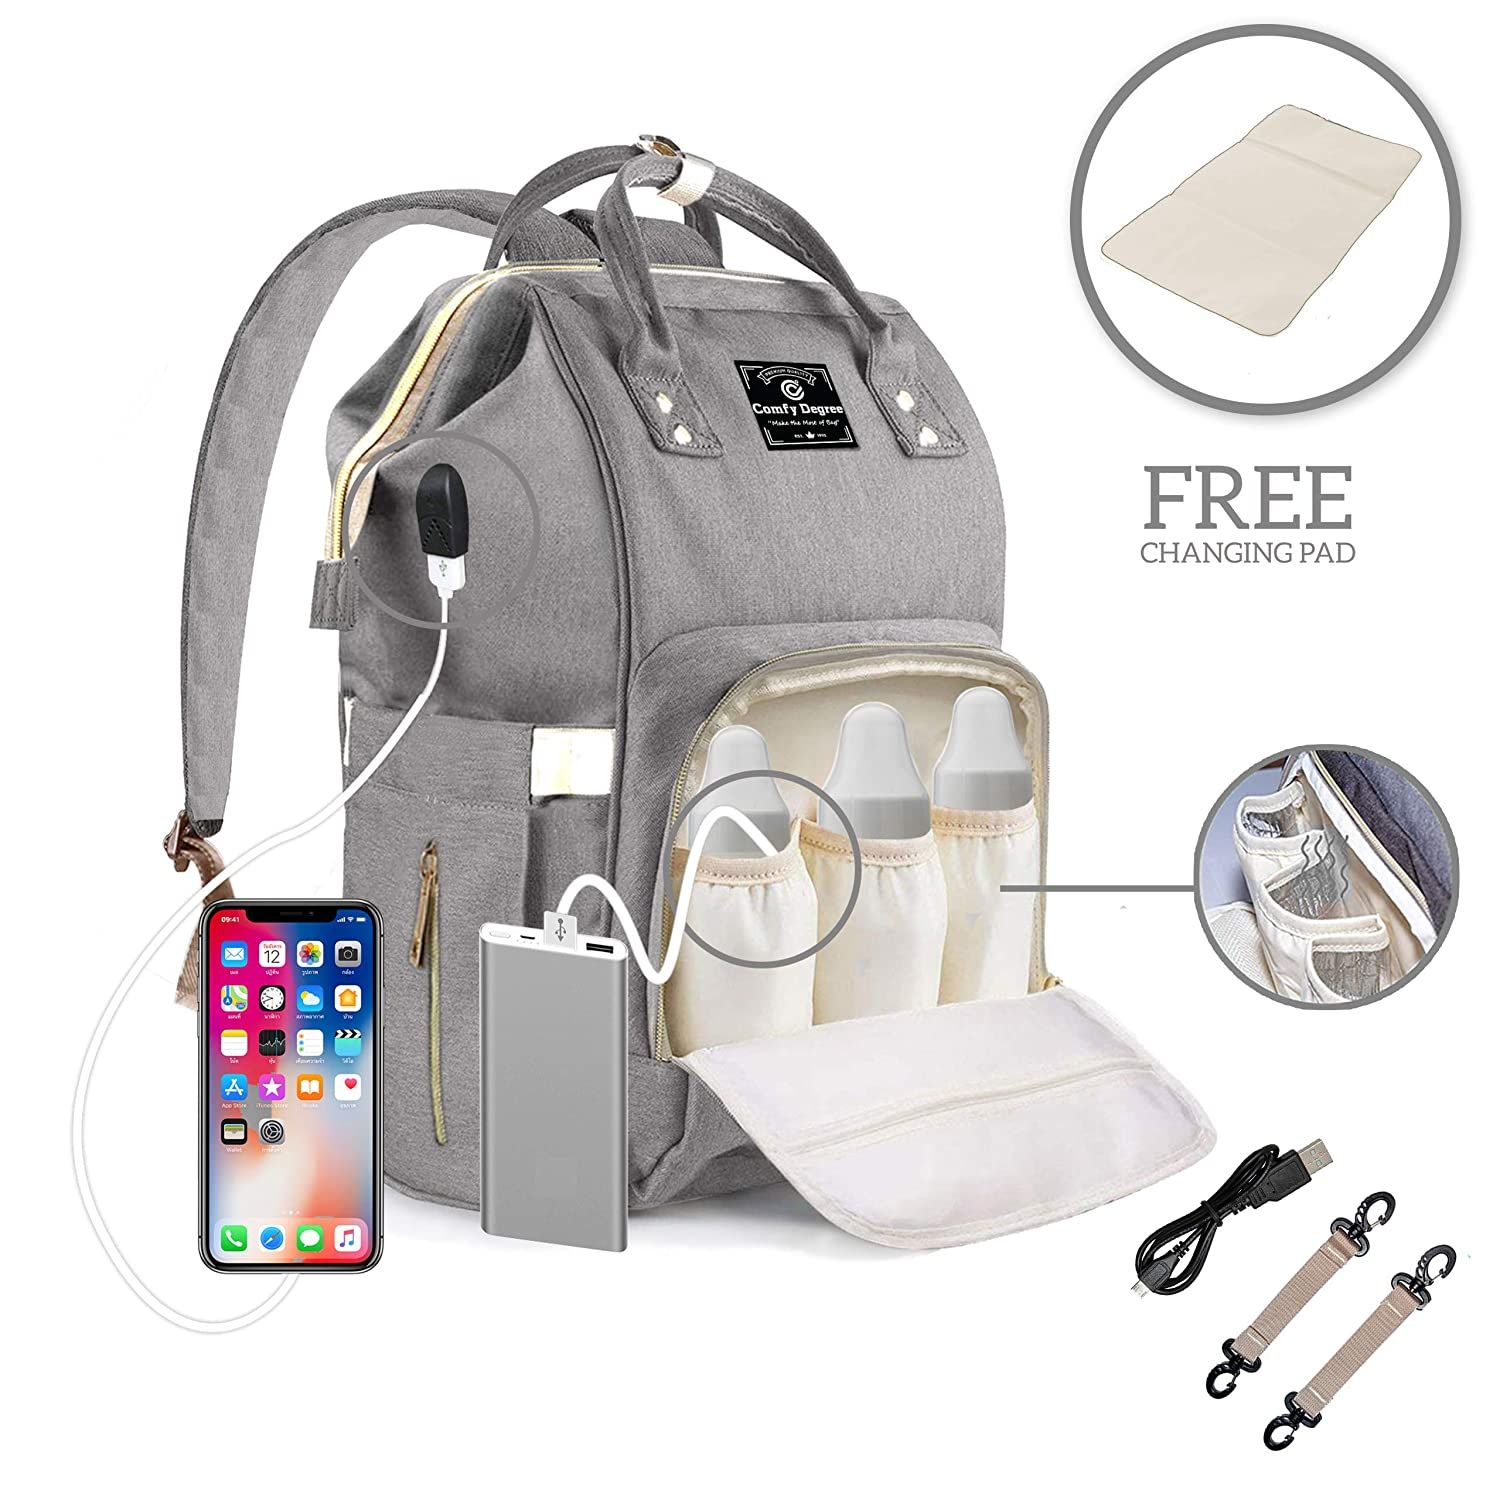 Waterproof Large Capacity Diaper Baby for Mom and Dad Gray Black ComfyDegree Nappy Changing Bag Backpack